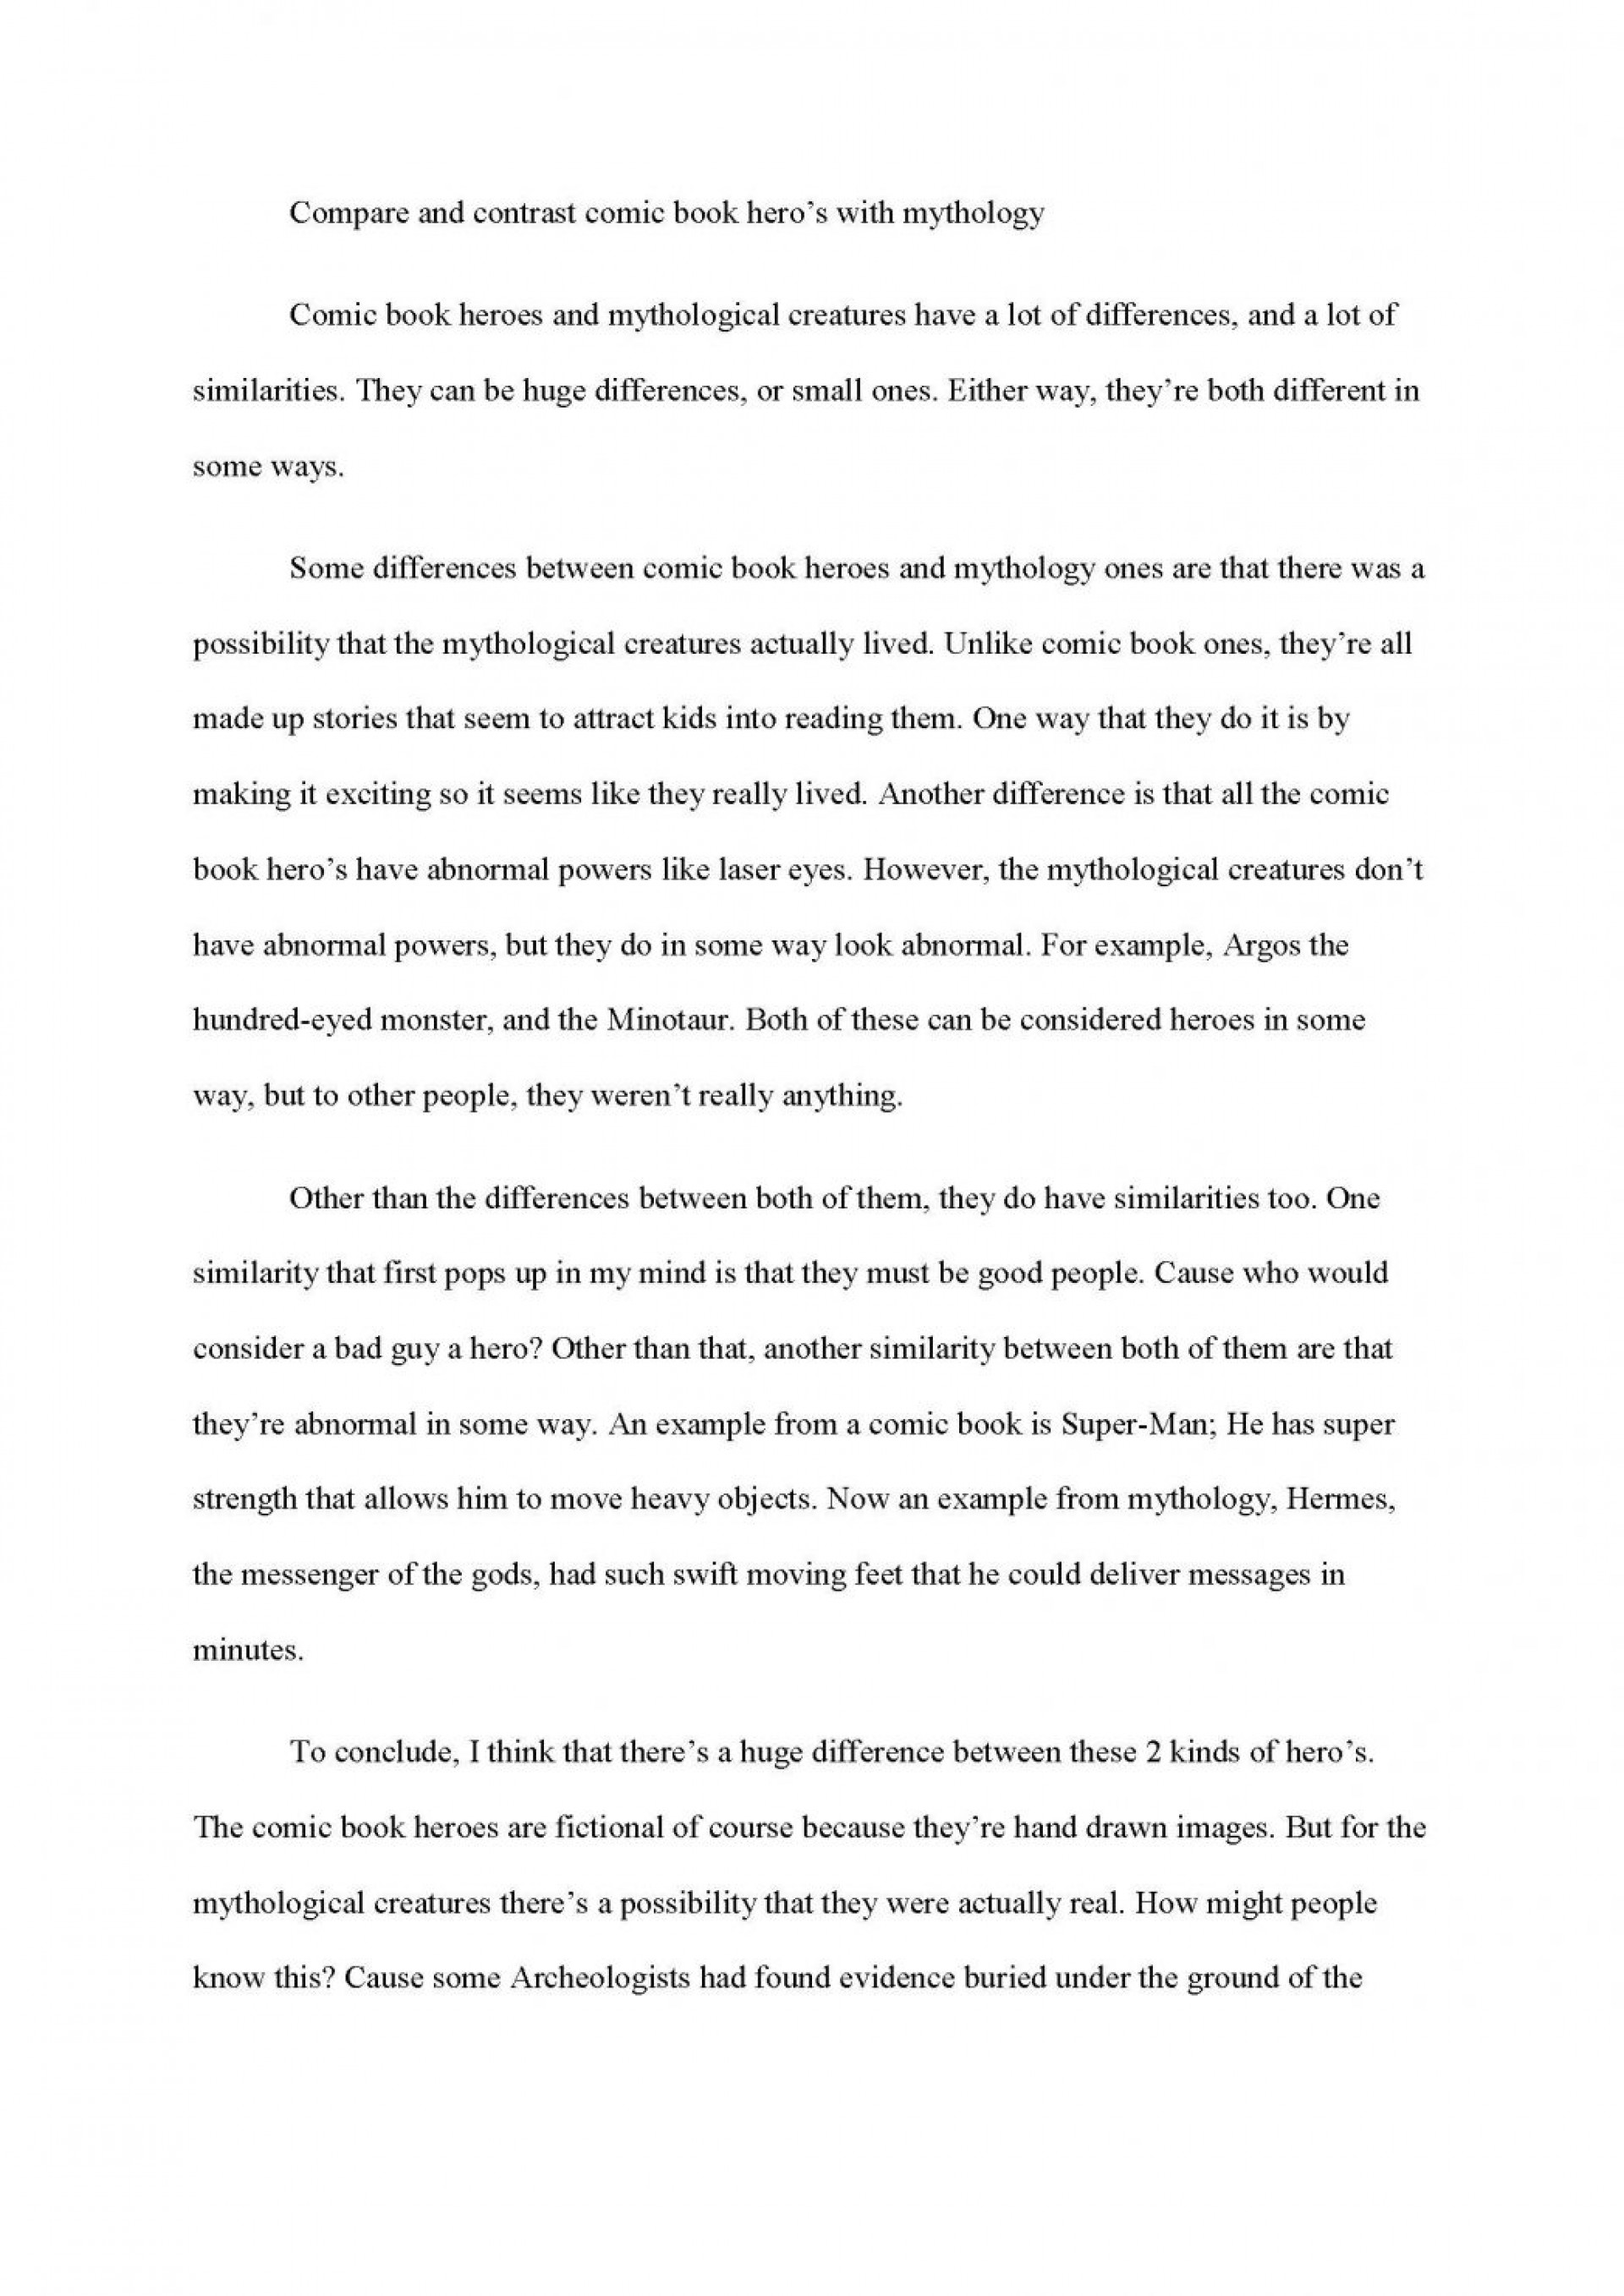 Compare and contrast essay for art history